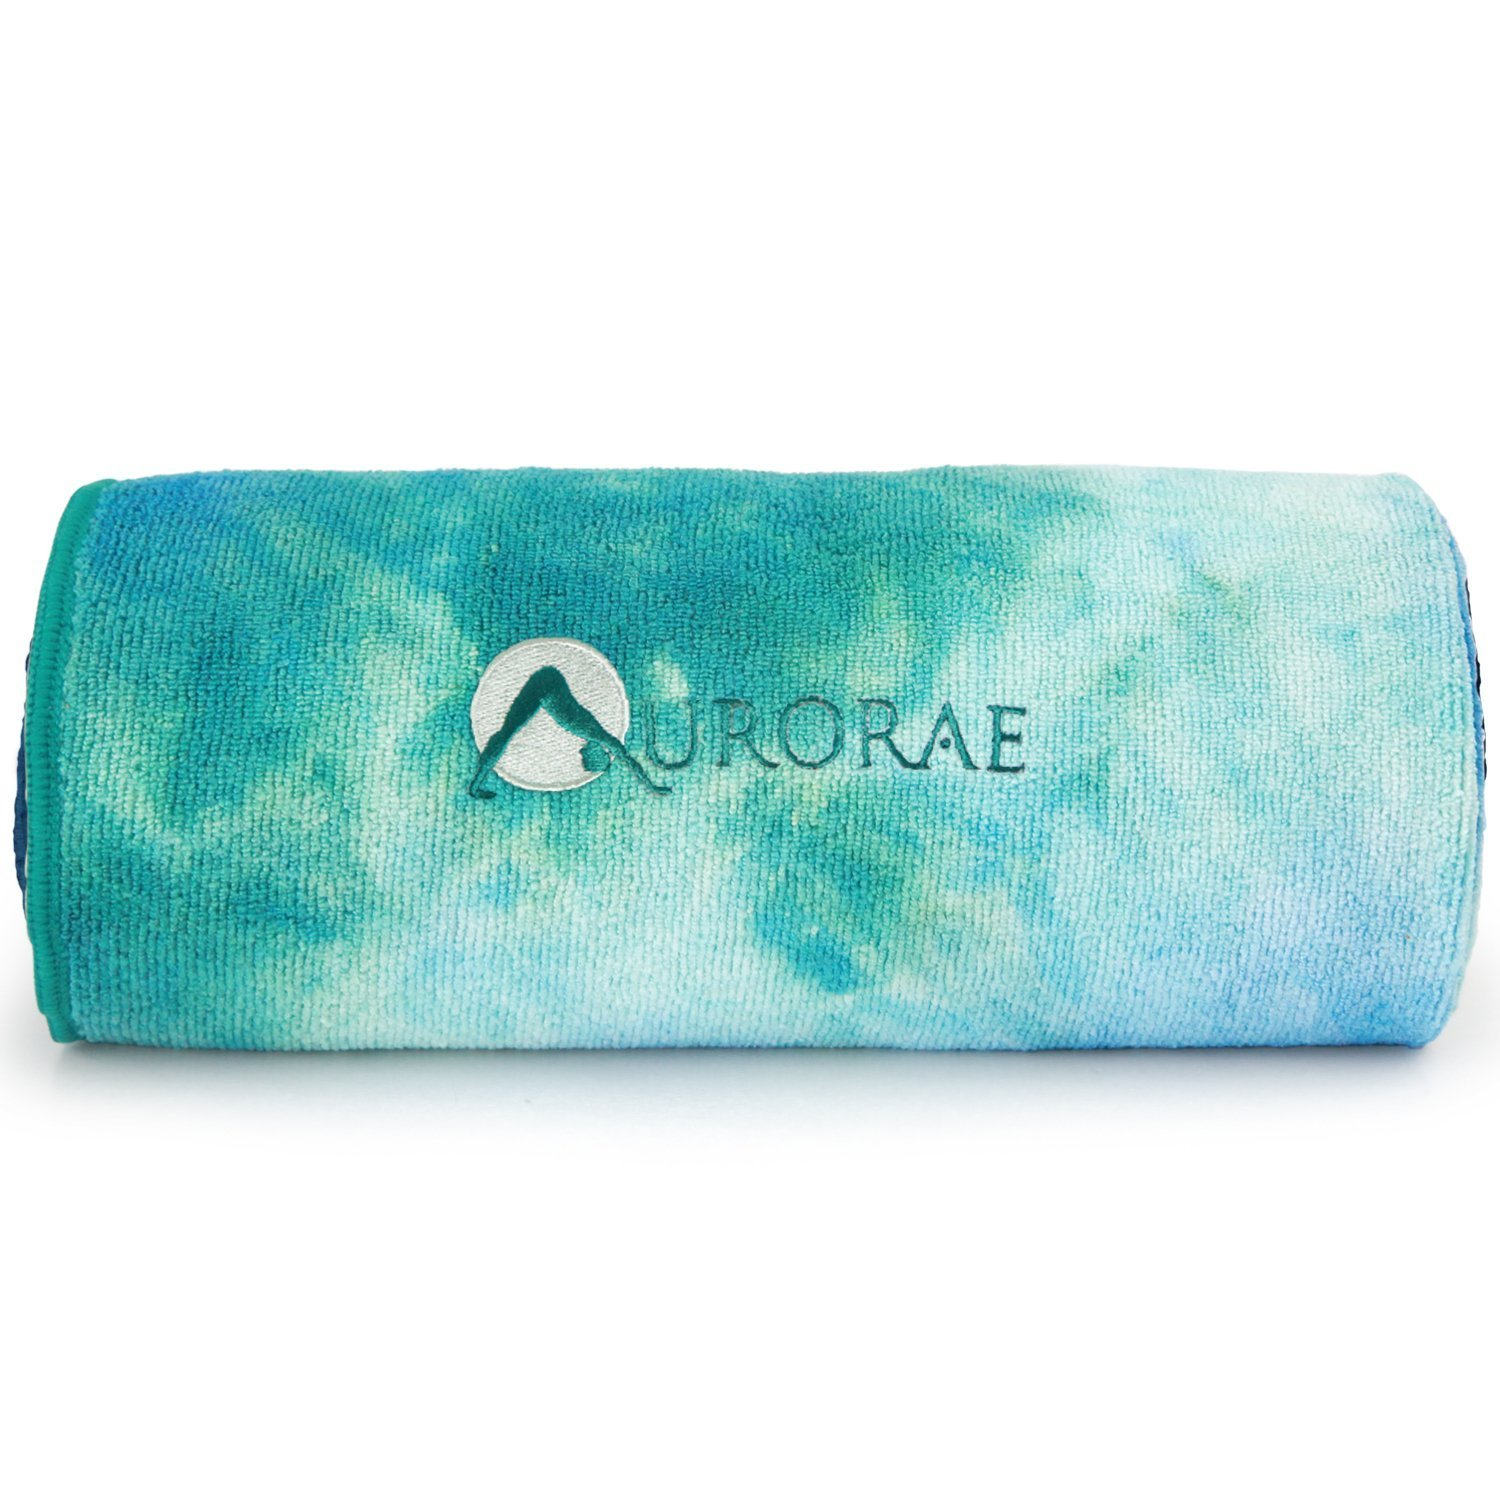 aurorae yoga mat towel in a aqua tie dye design